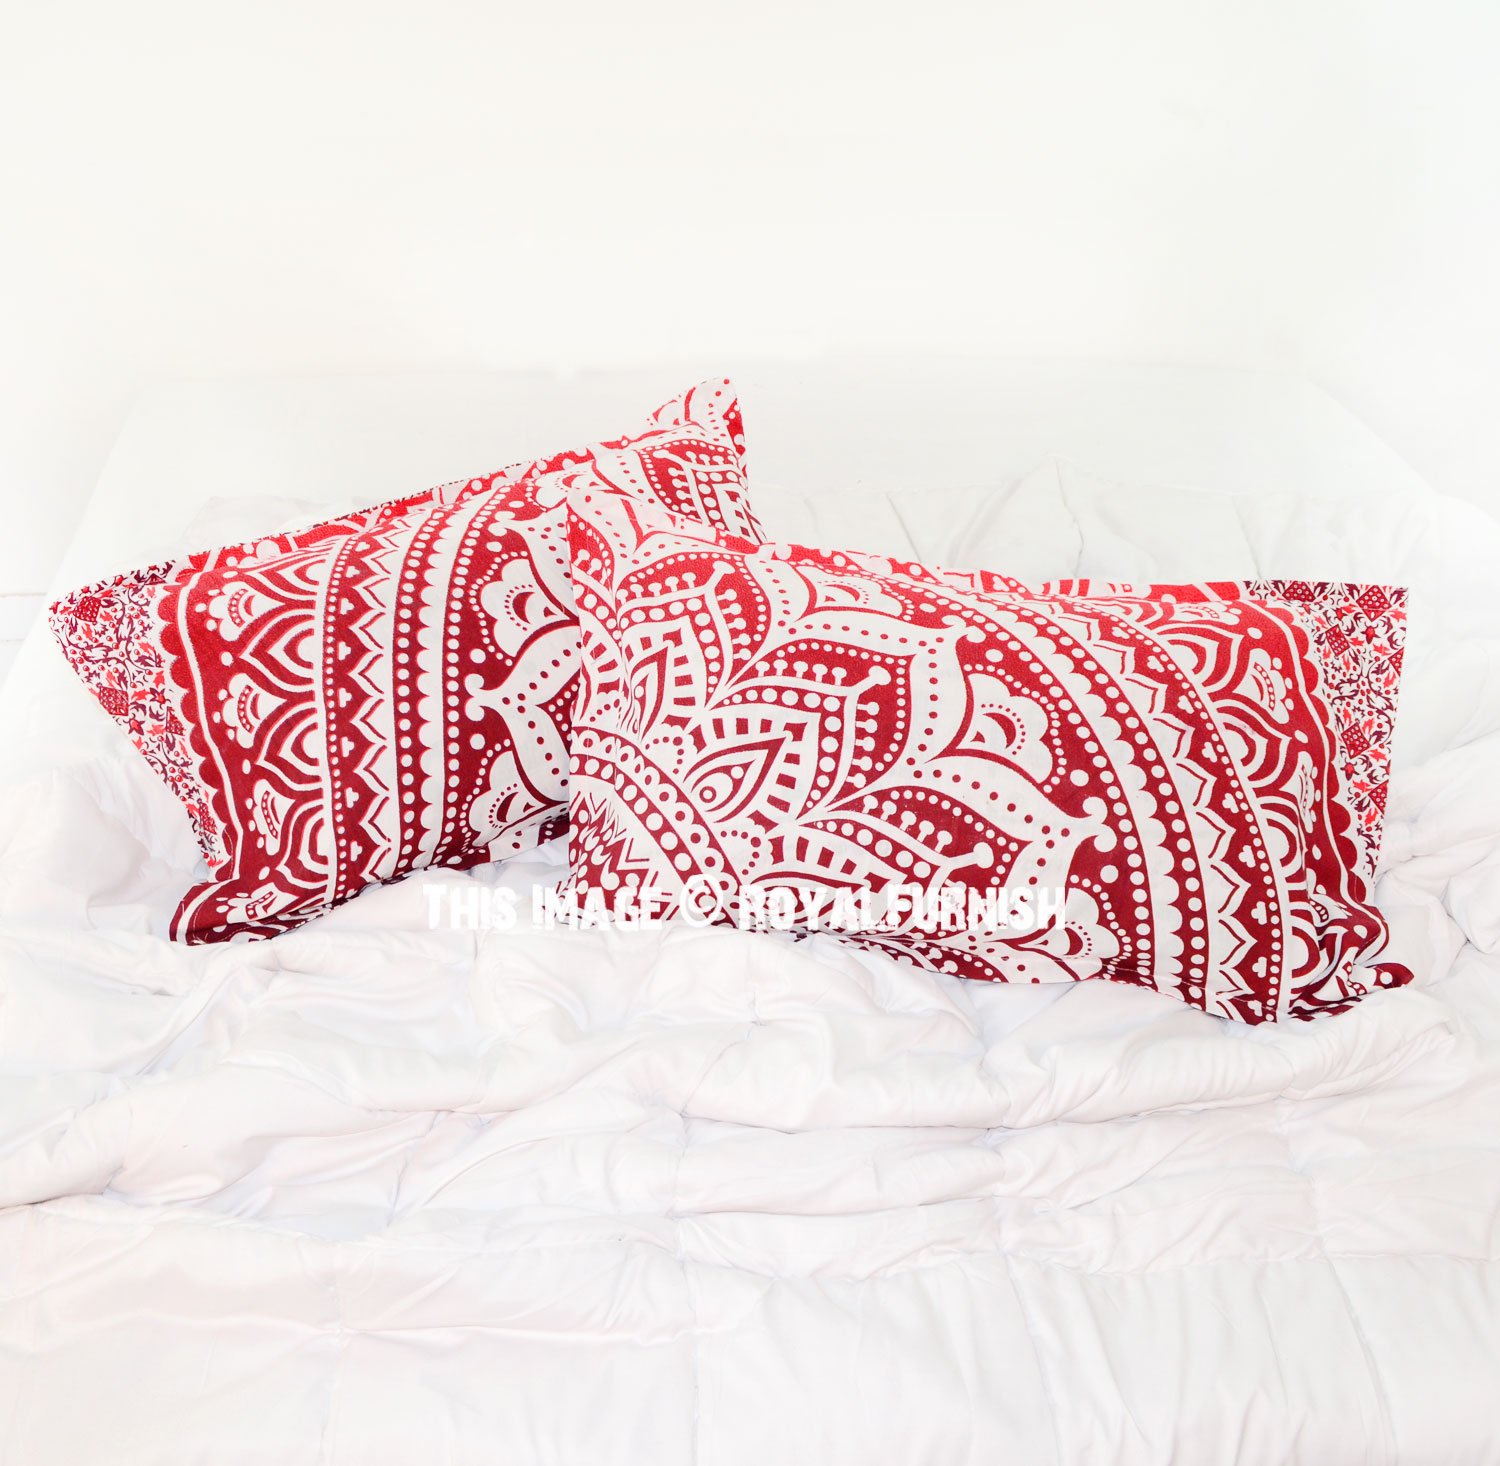 Red Throw Pillow For Bed : Decorative Red Bohemian Floral Ombre Mandala Bed Pillow Covers Set of Two - RoyalFurnish.com